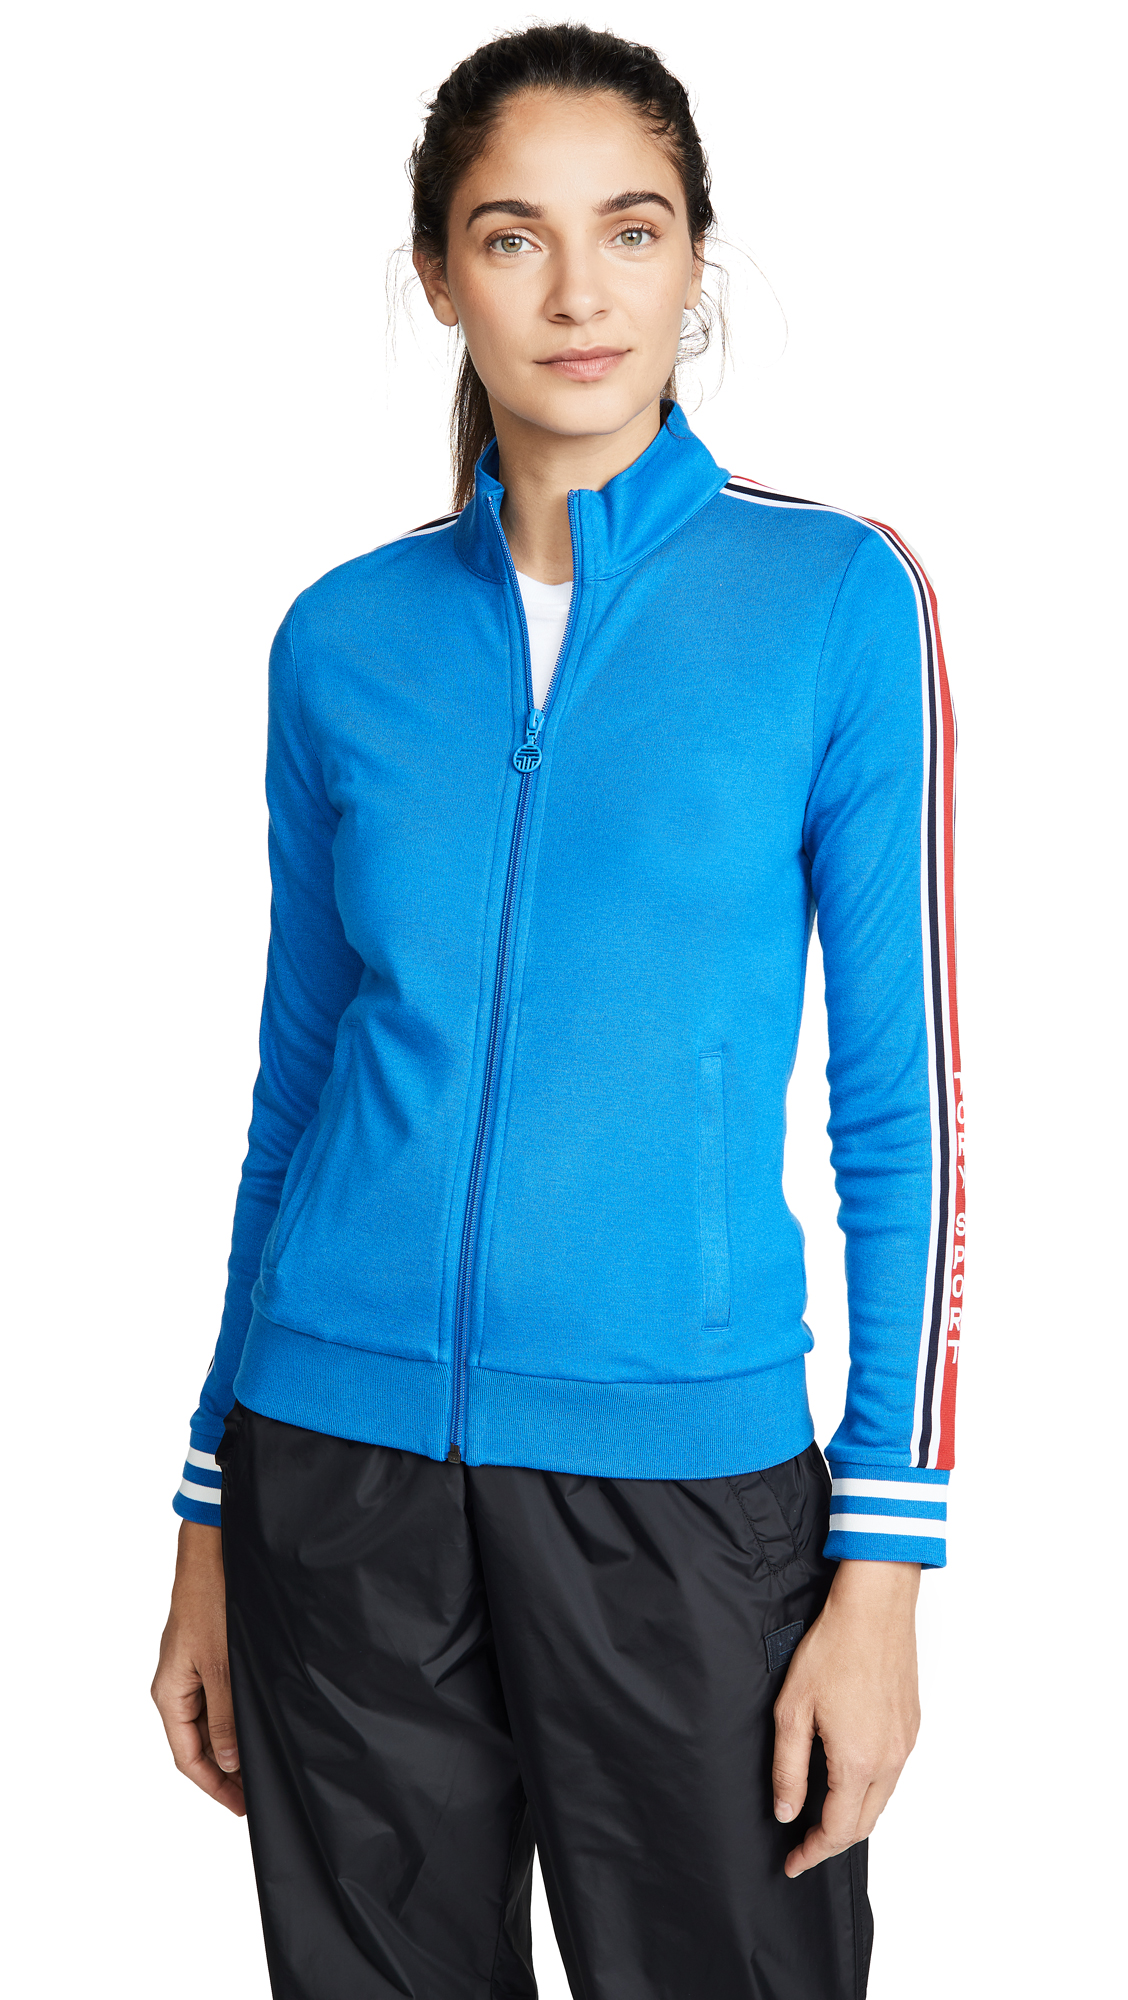 Tory Sport Wool Blend Track Jacket In Galleria Blue